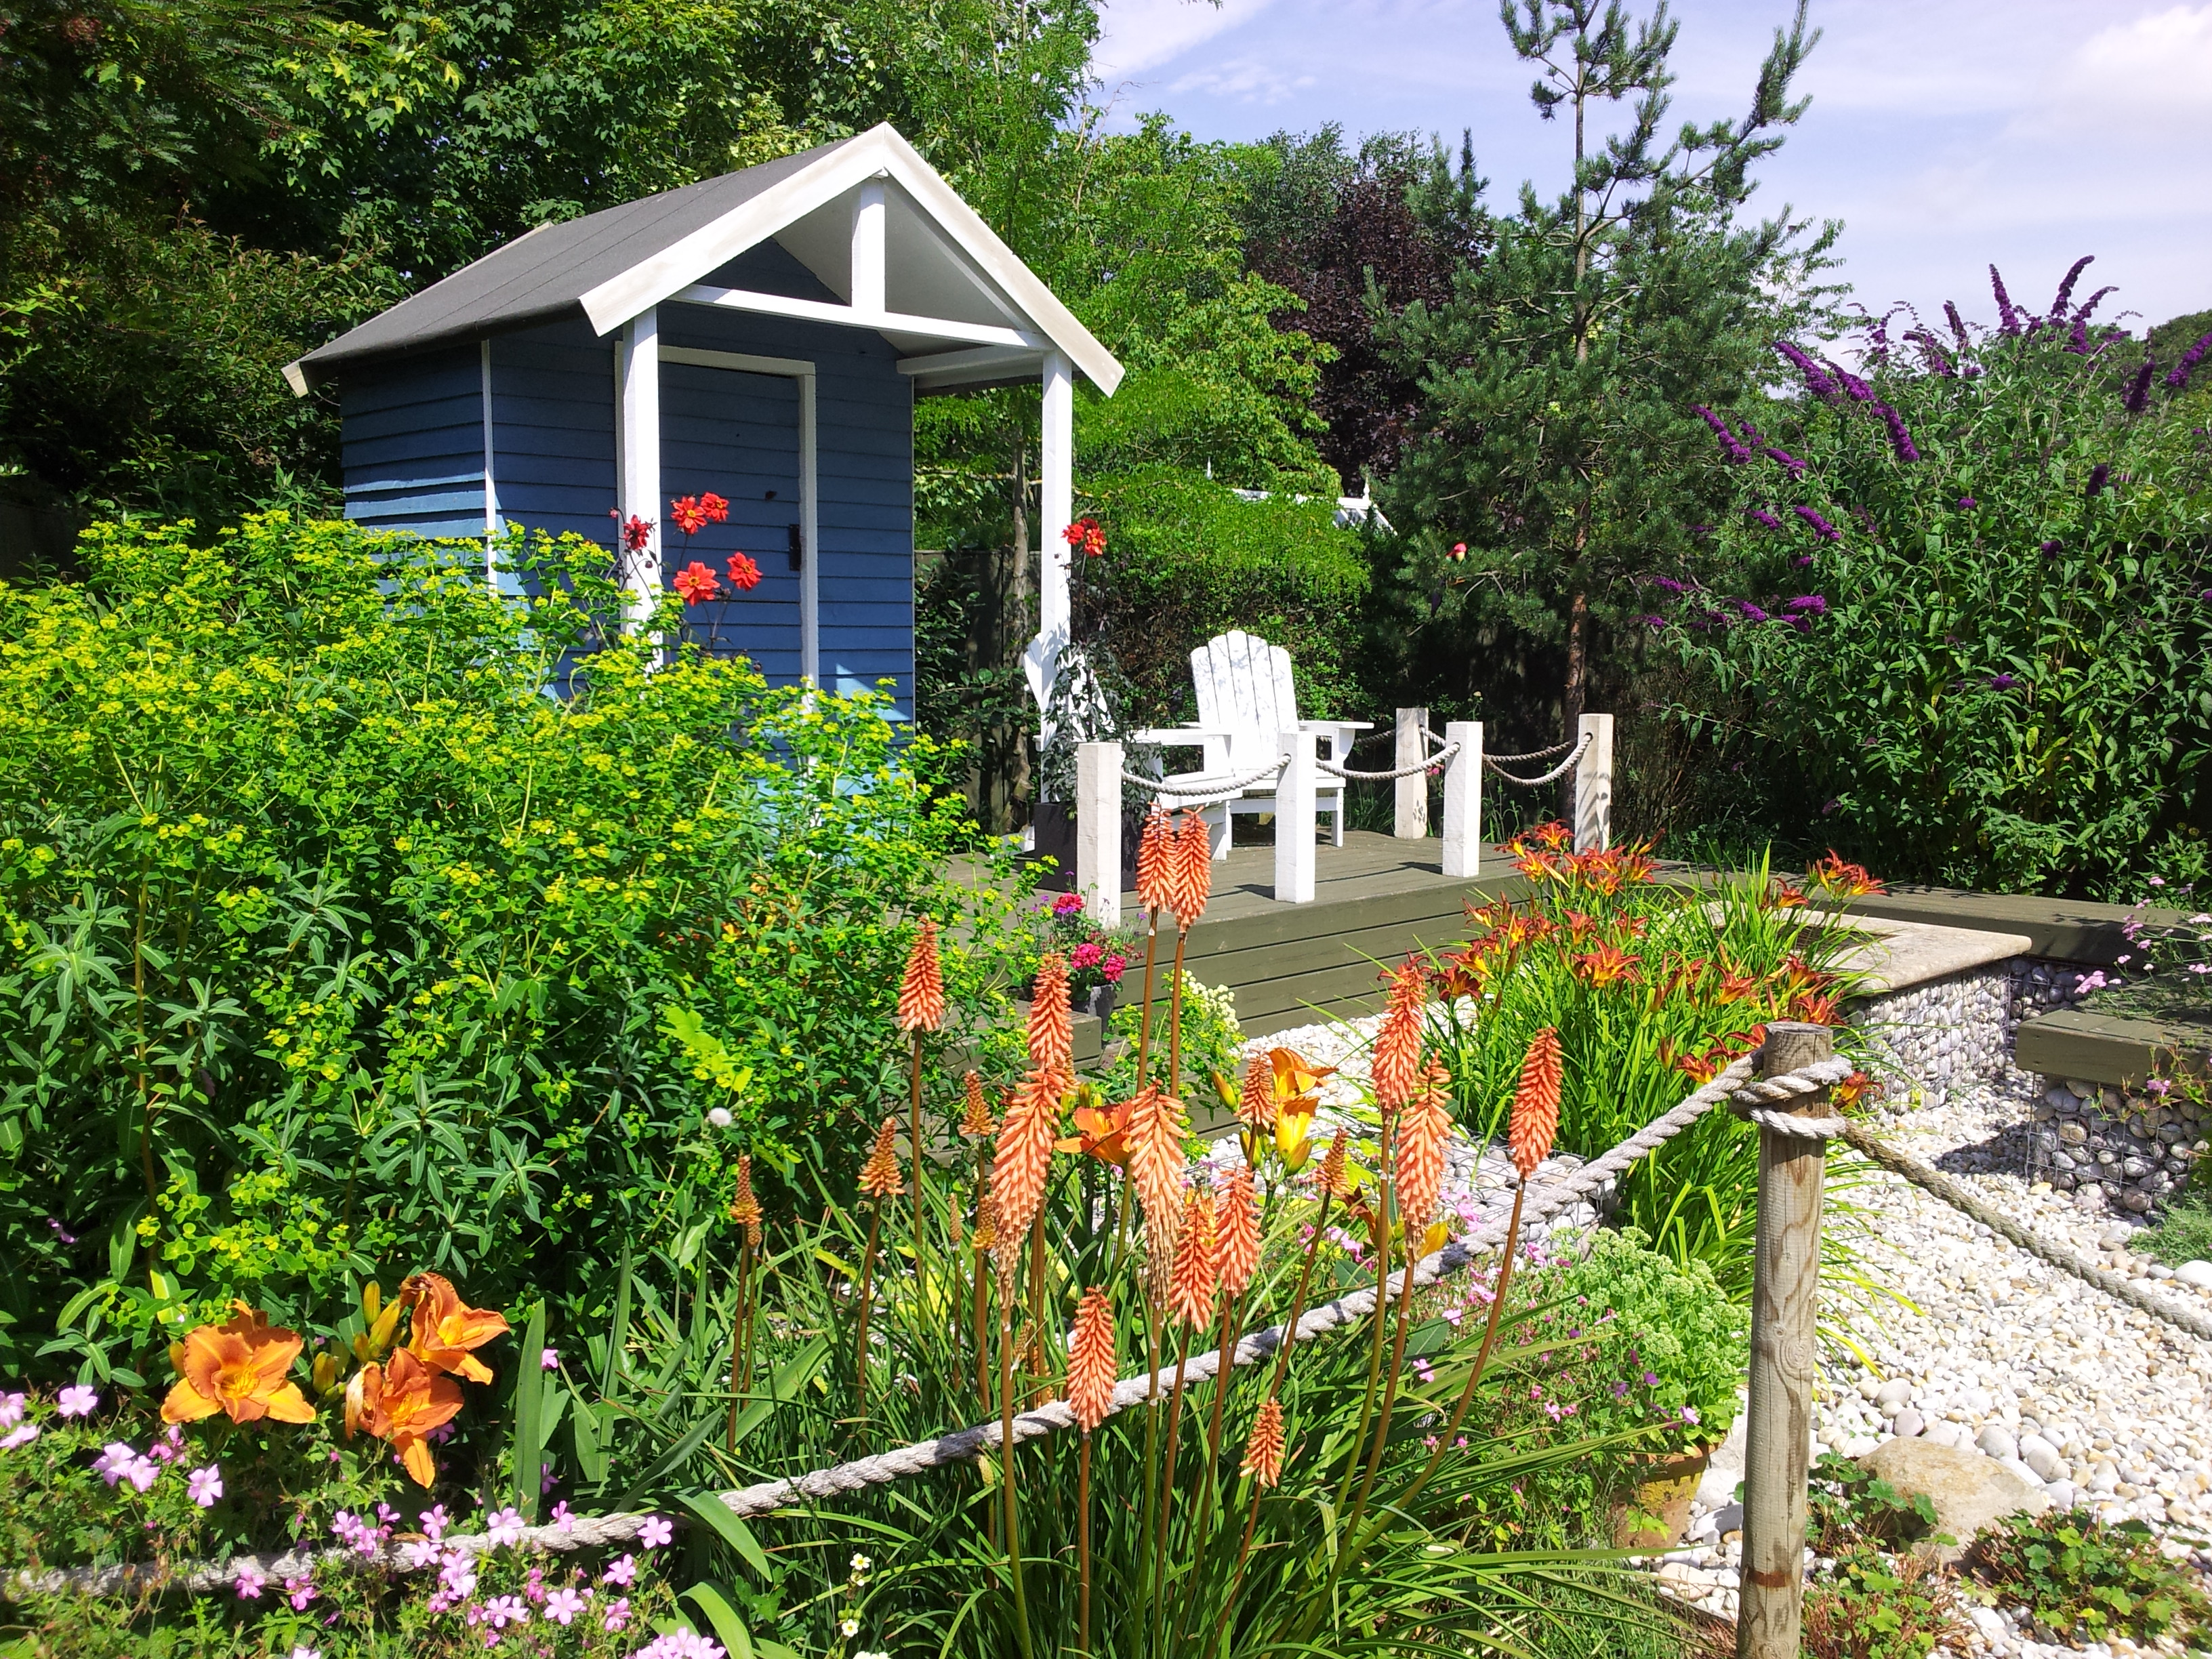 The Land's End Garden, designed as a seaside retreat.